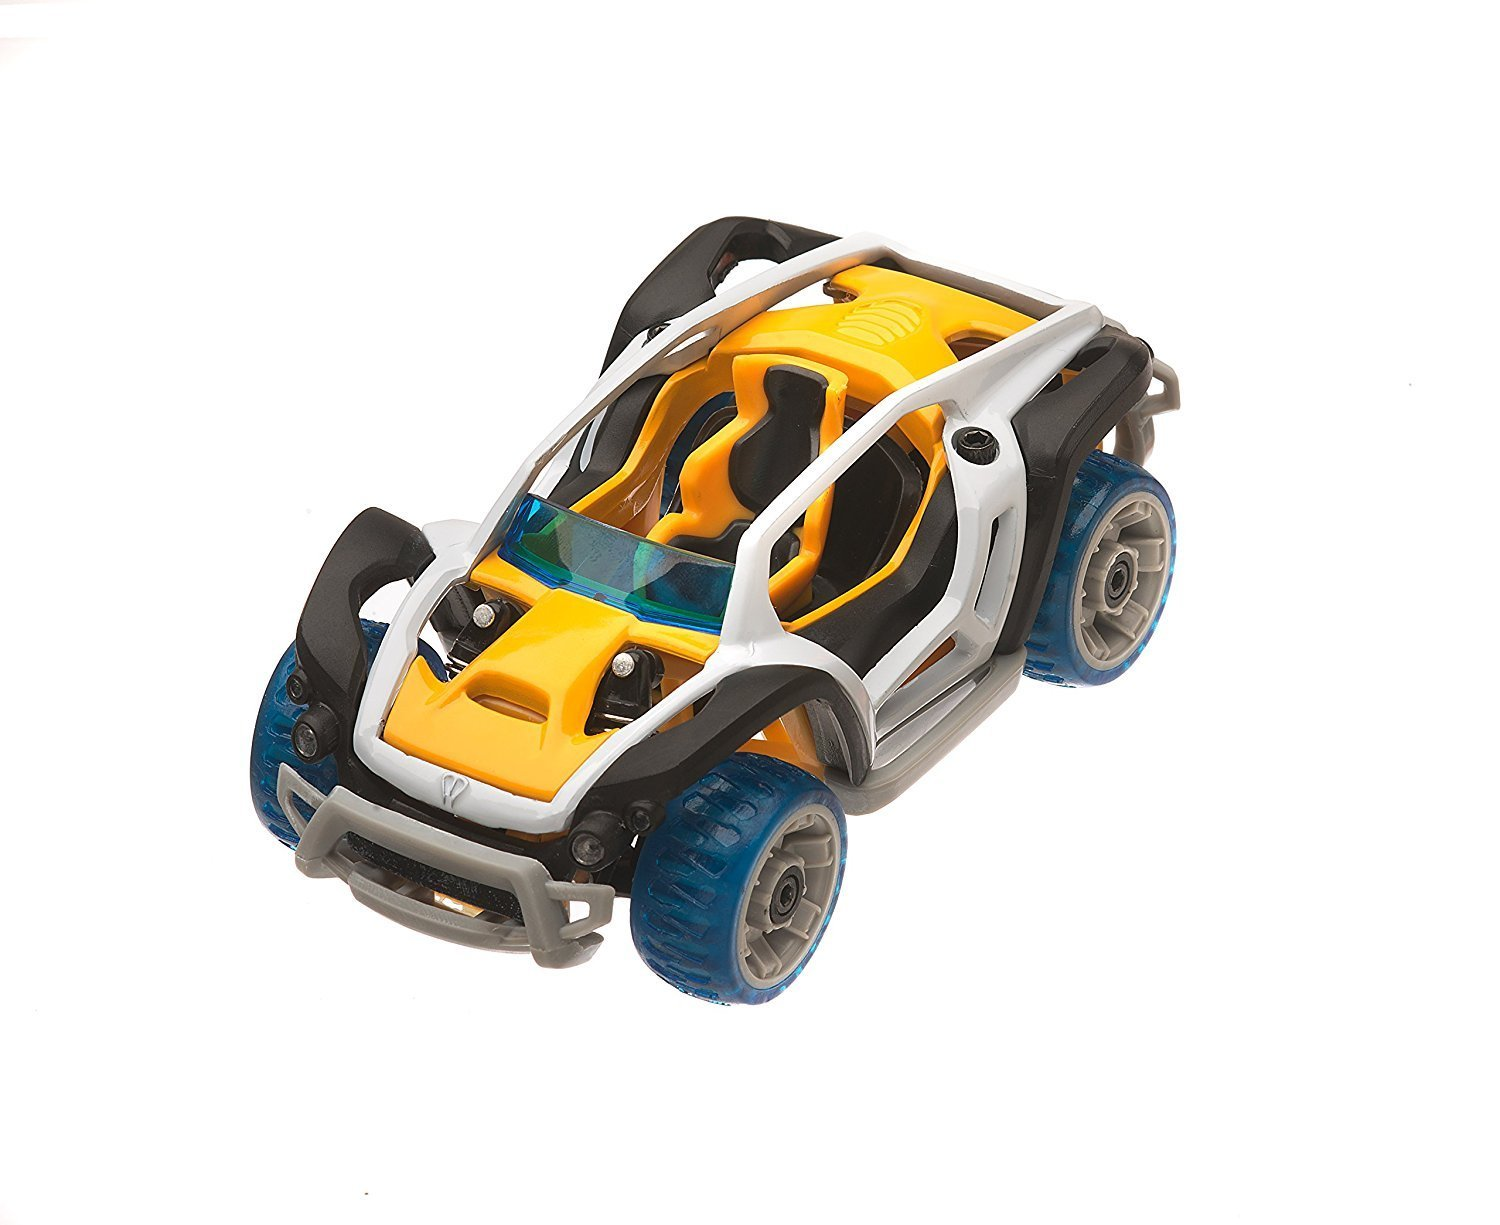 Modarri X1 Dirt Car Toy by Thoughtfull Toys – Ultimate Car Construction Toys For Kids Includes X1 Dirt Car + Hex Tool – Mix N Match Educational Engineering & Science Toy Set Perfect For Family Fun